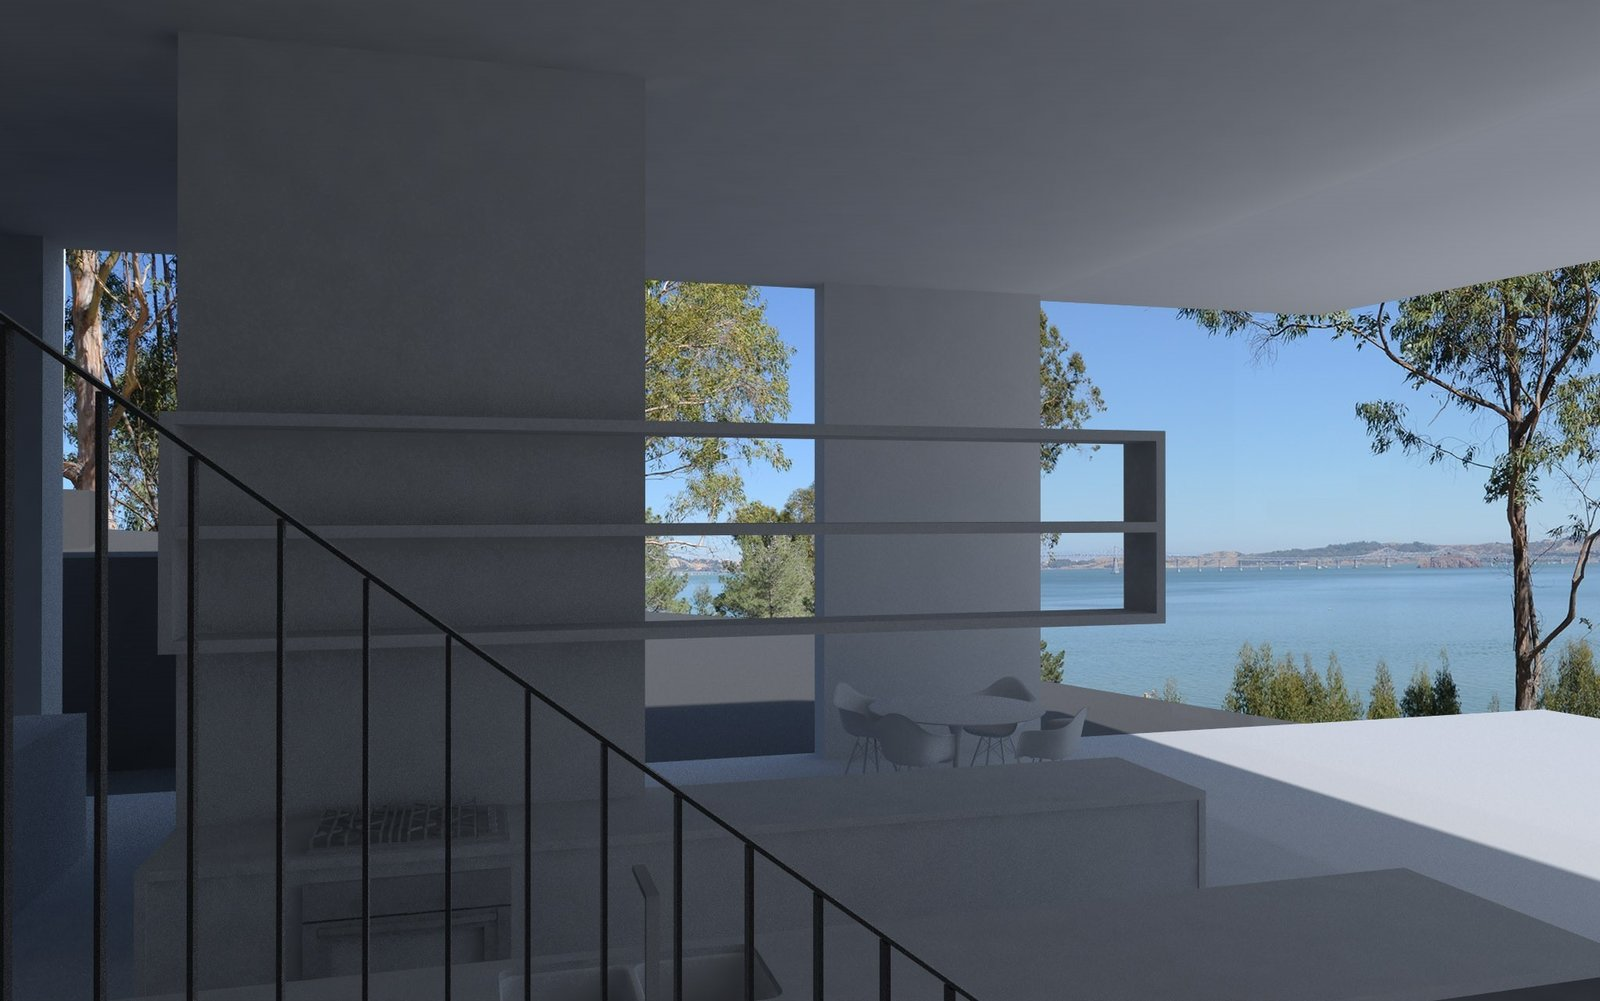 Living Room  Photo 8 of 8 in Soon to Be Completed, These Striking Beachfront Estates Are Designed by 2 All-Star Architects